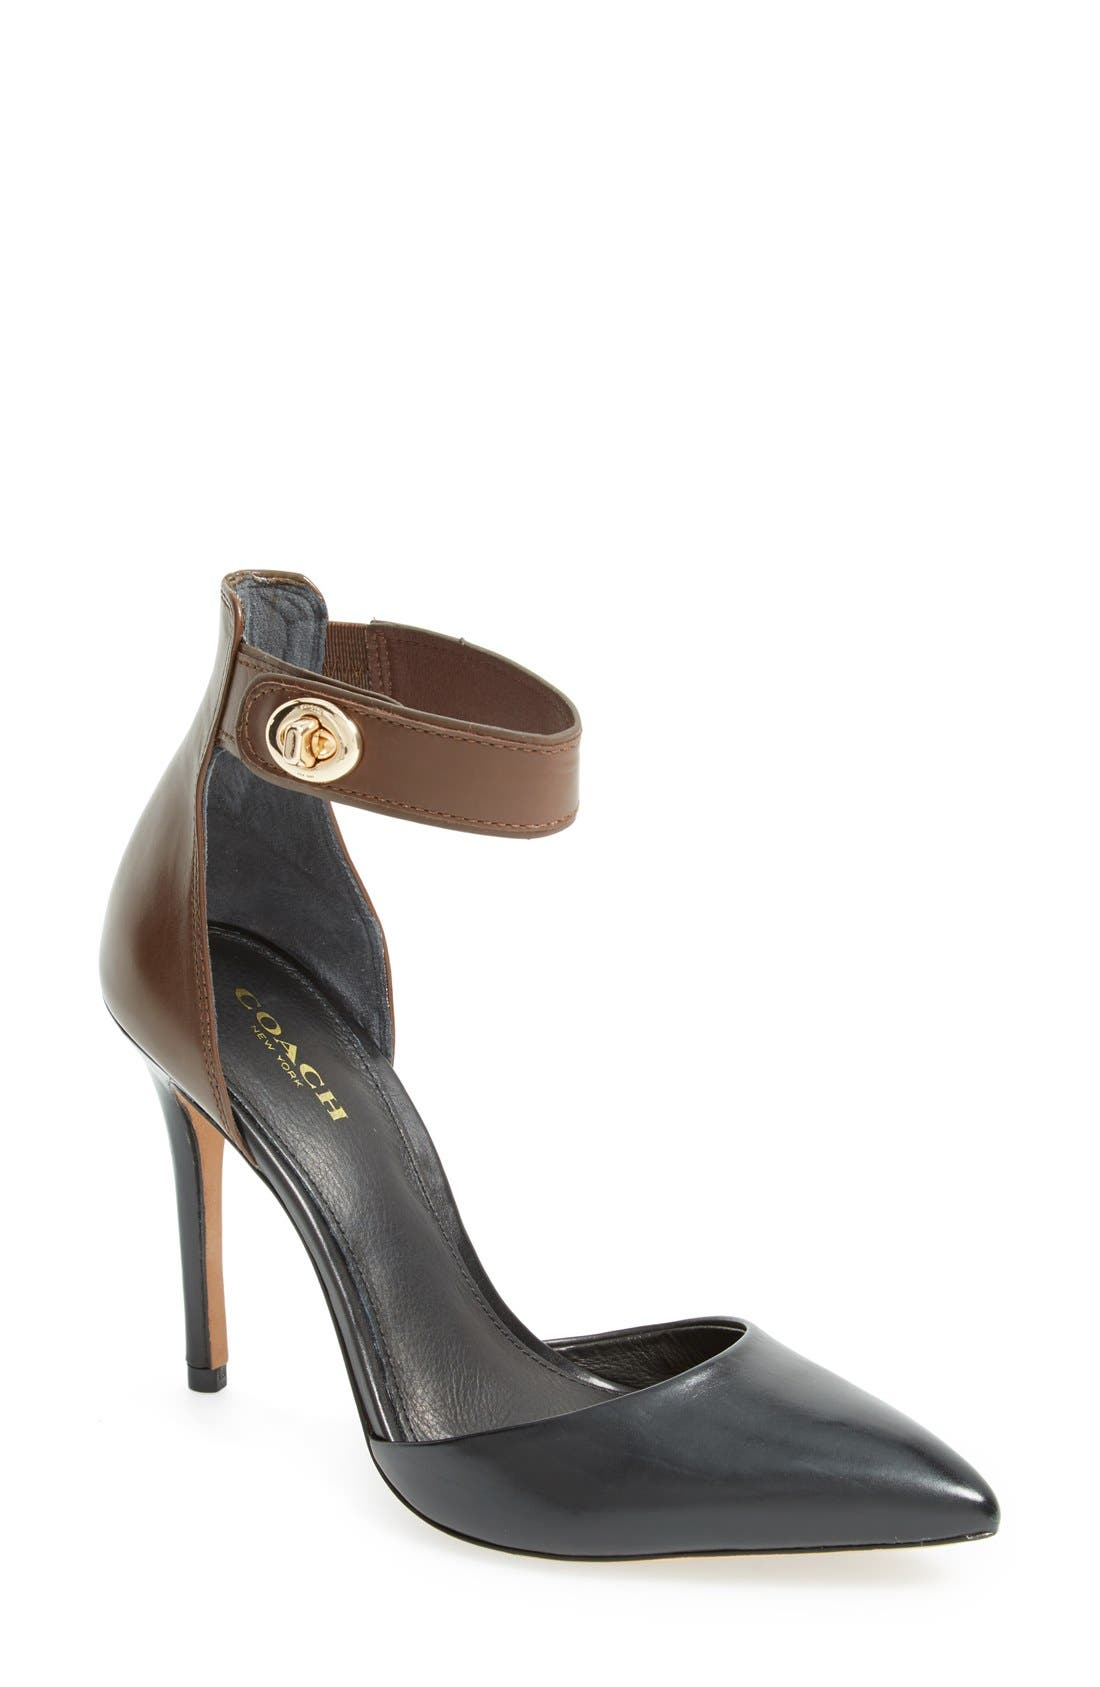 Main Image - COACH 'Houston' Two-Tone Leather Ankle Strap Pump (Women)